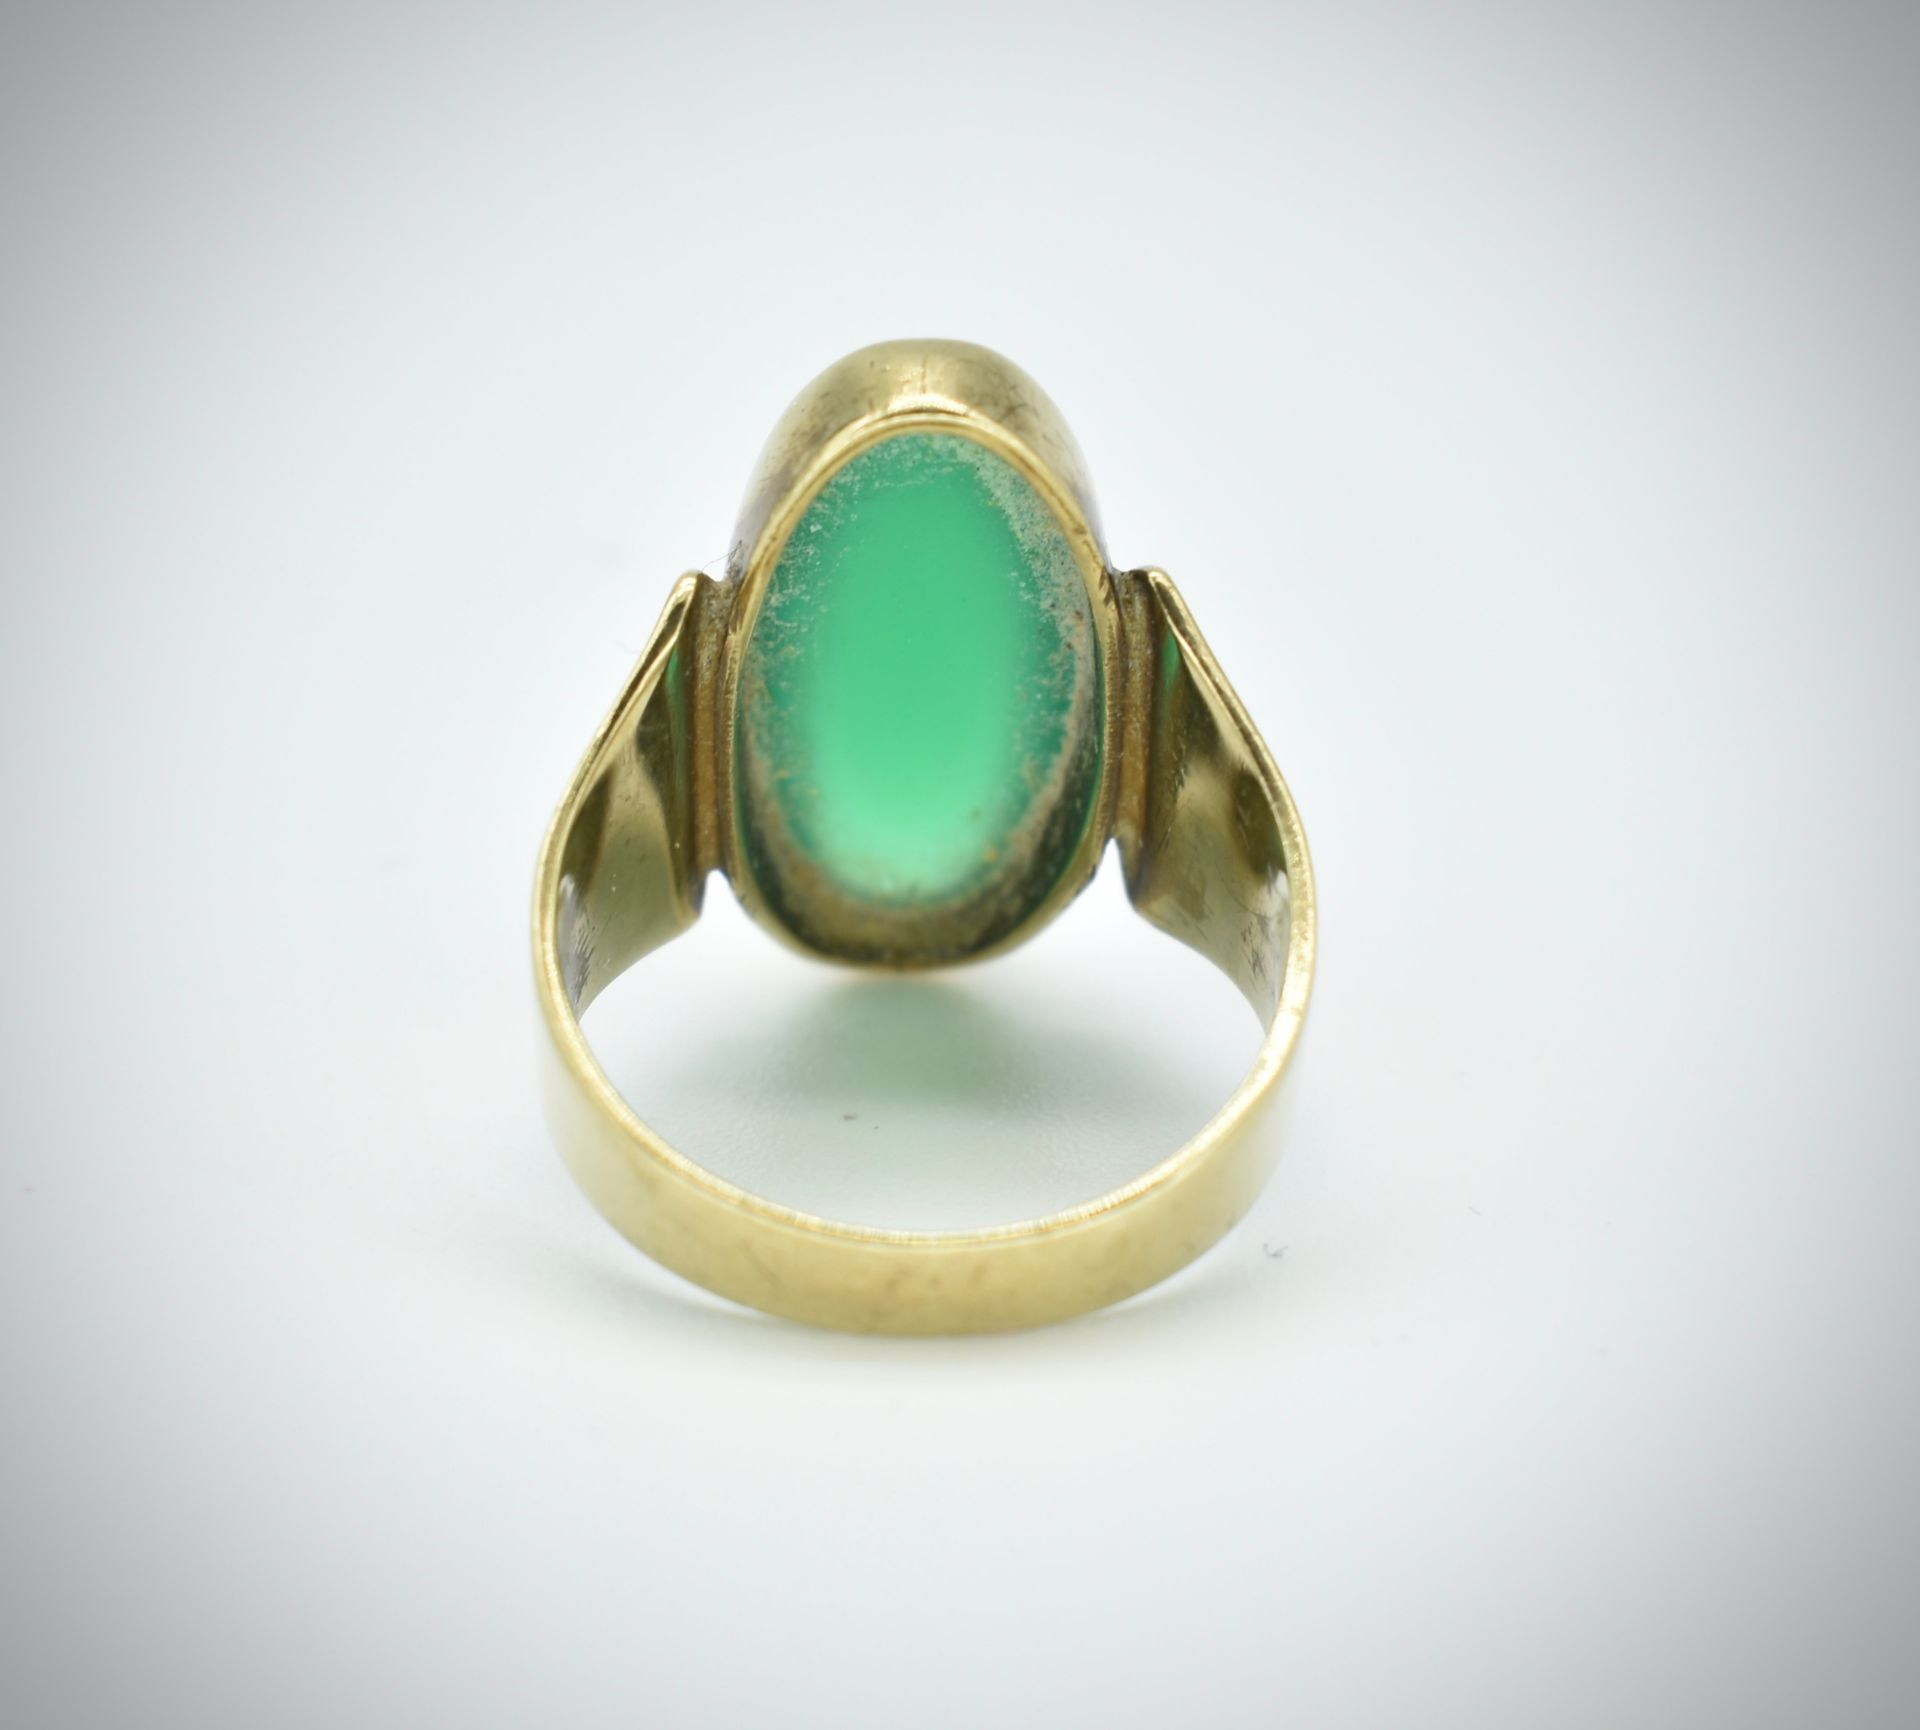 8ct Gold Chrysoprase Cabochon Ring - Image 2 of 3